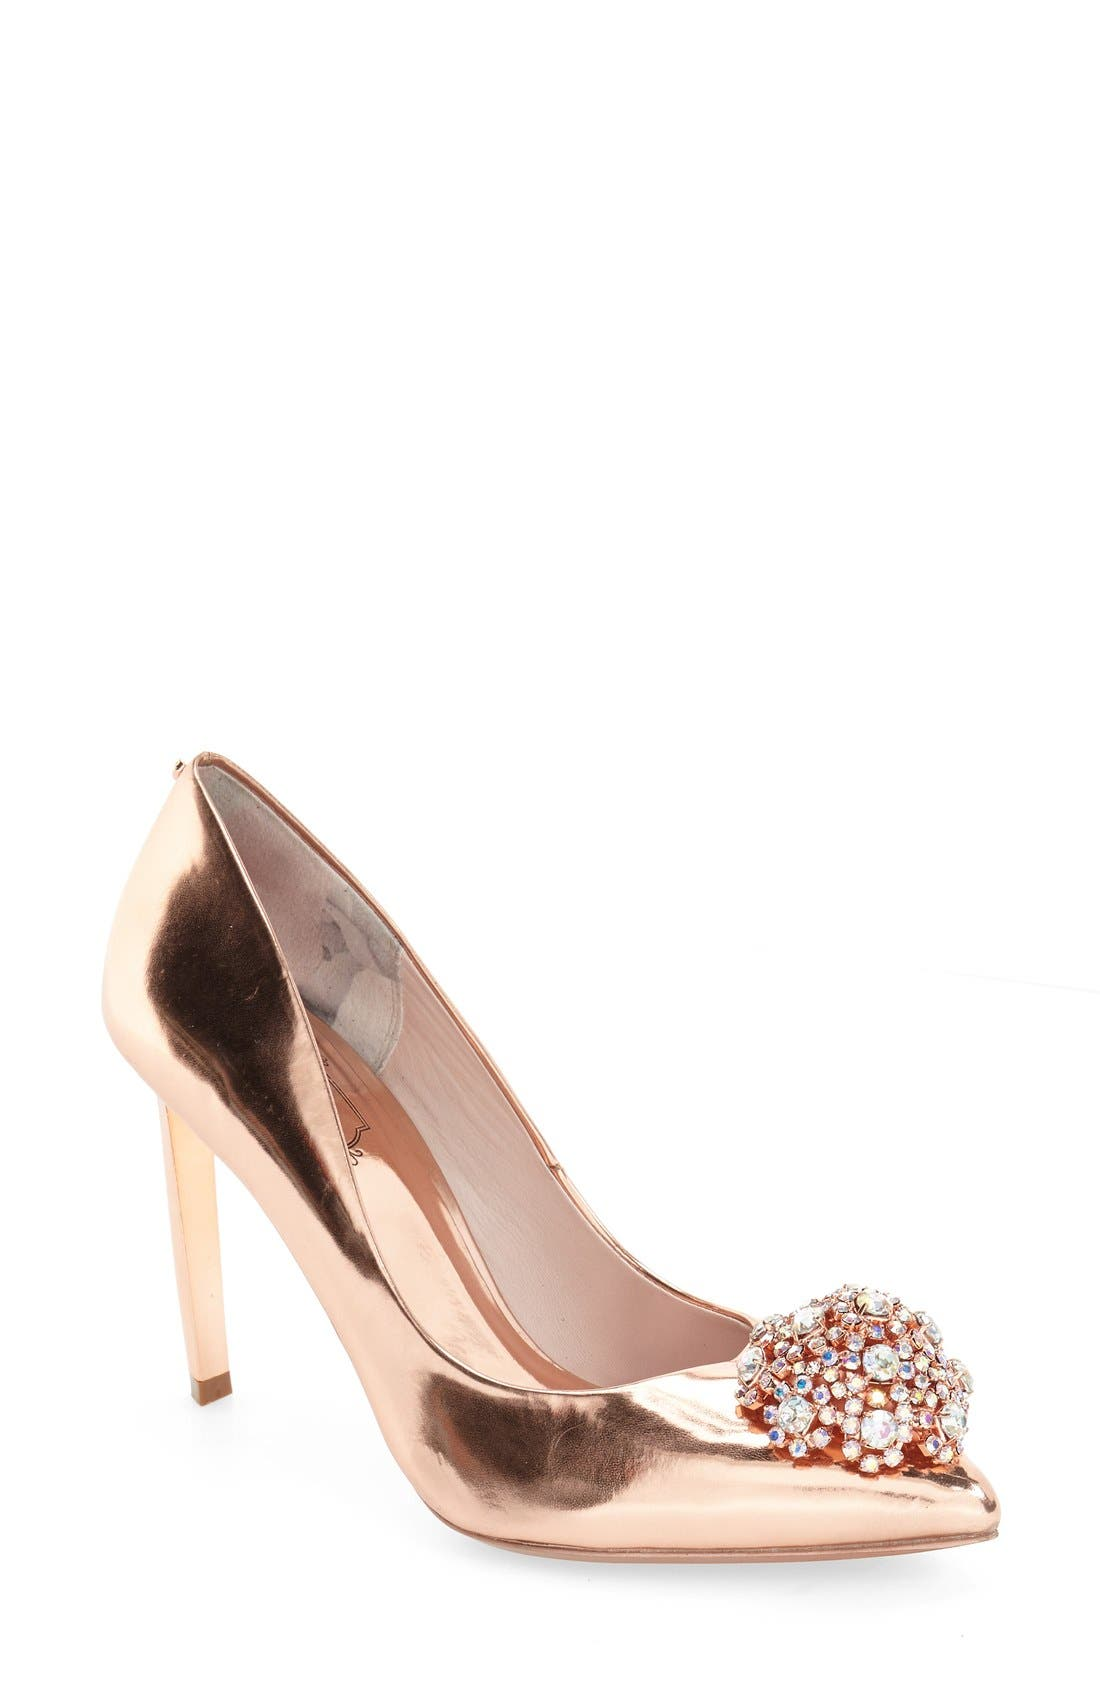 Alternate Image 1 Selected - Ted Baker London 'Peetch' Pointy Toe Pump (Women)